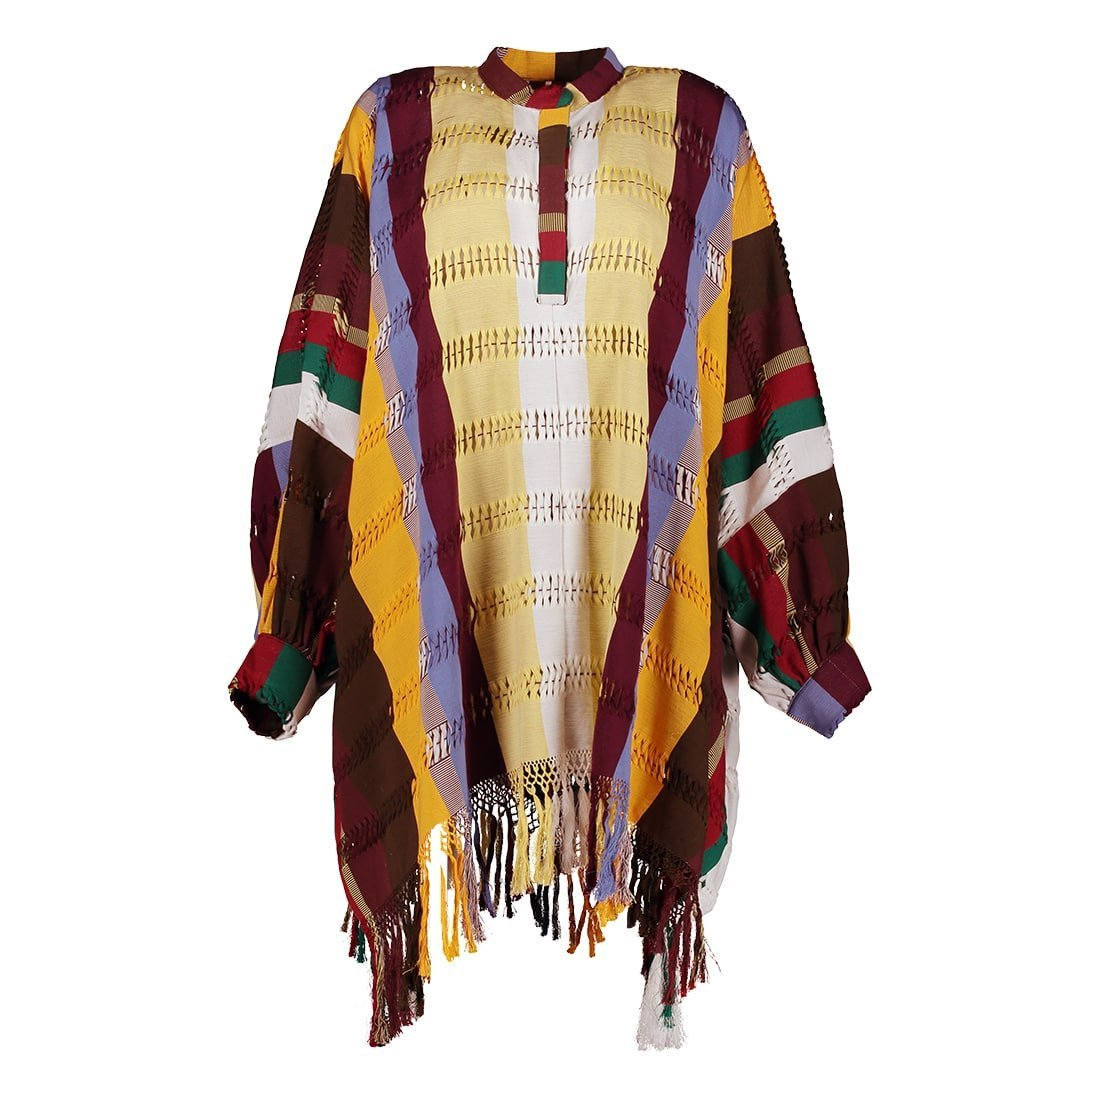 100% cotton long-sleeved tunic 1